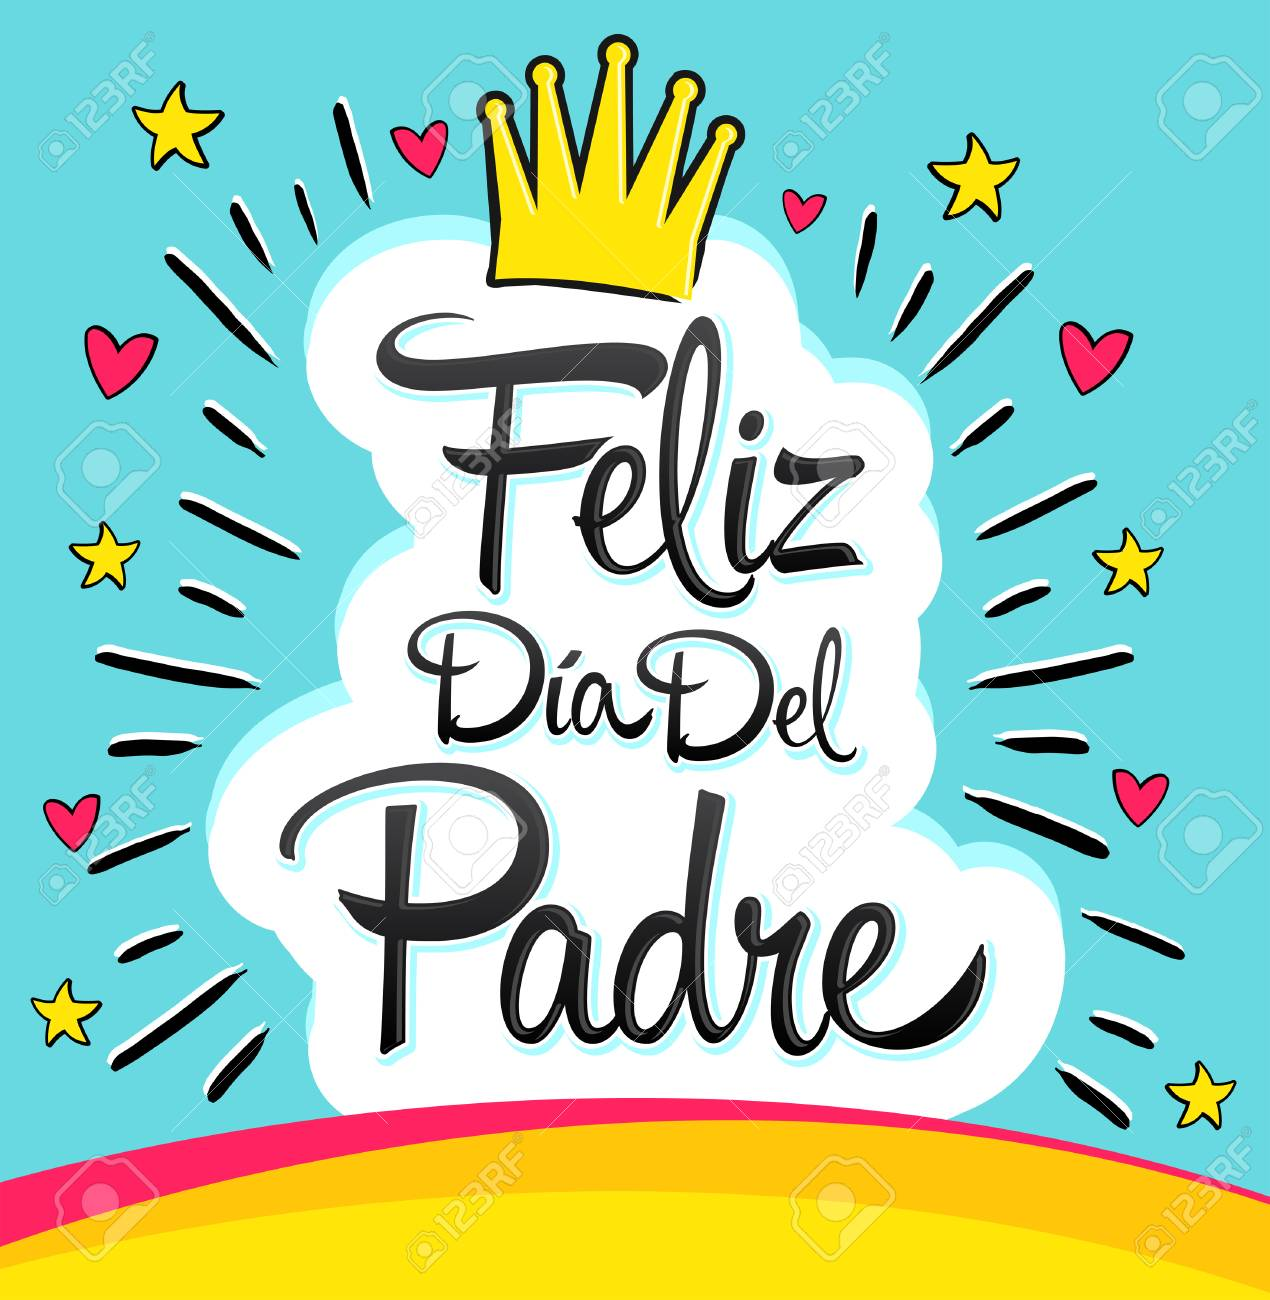 Feliz Dia Del Padre, Happy Fathers Day Spanish Text, Vector ...